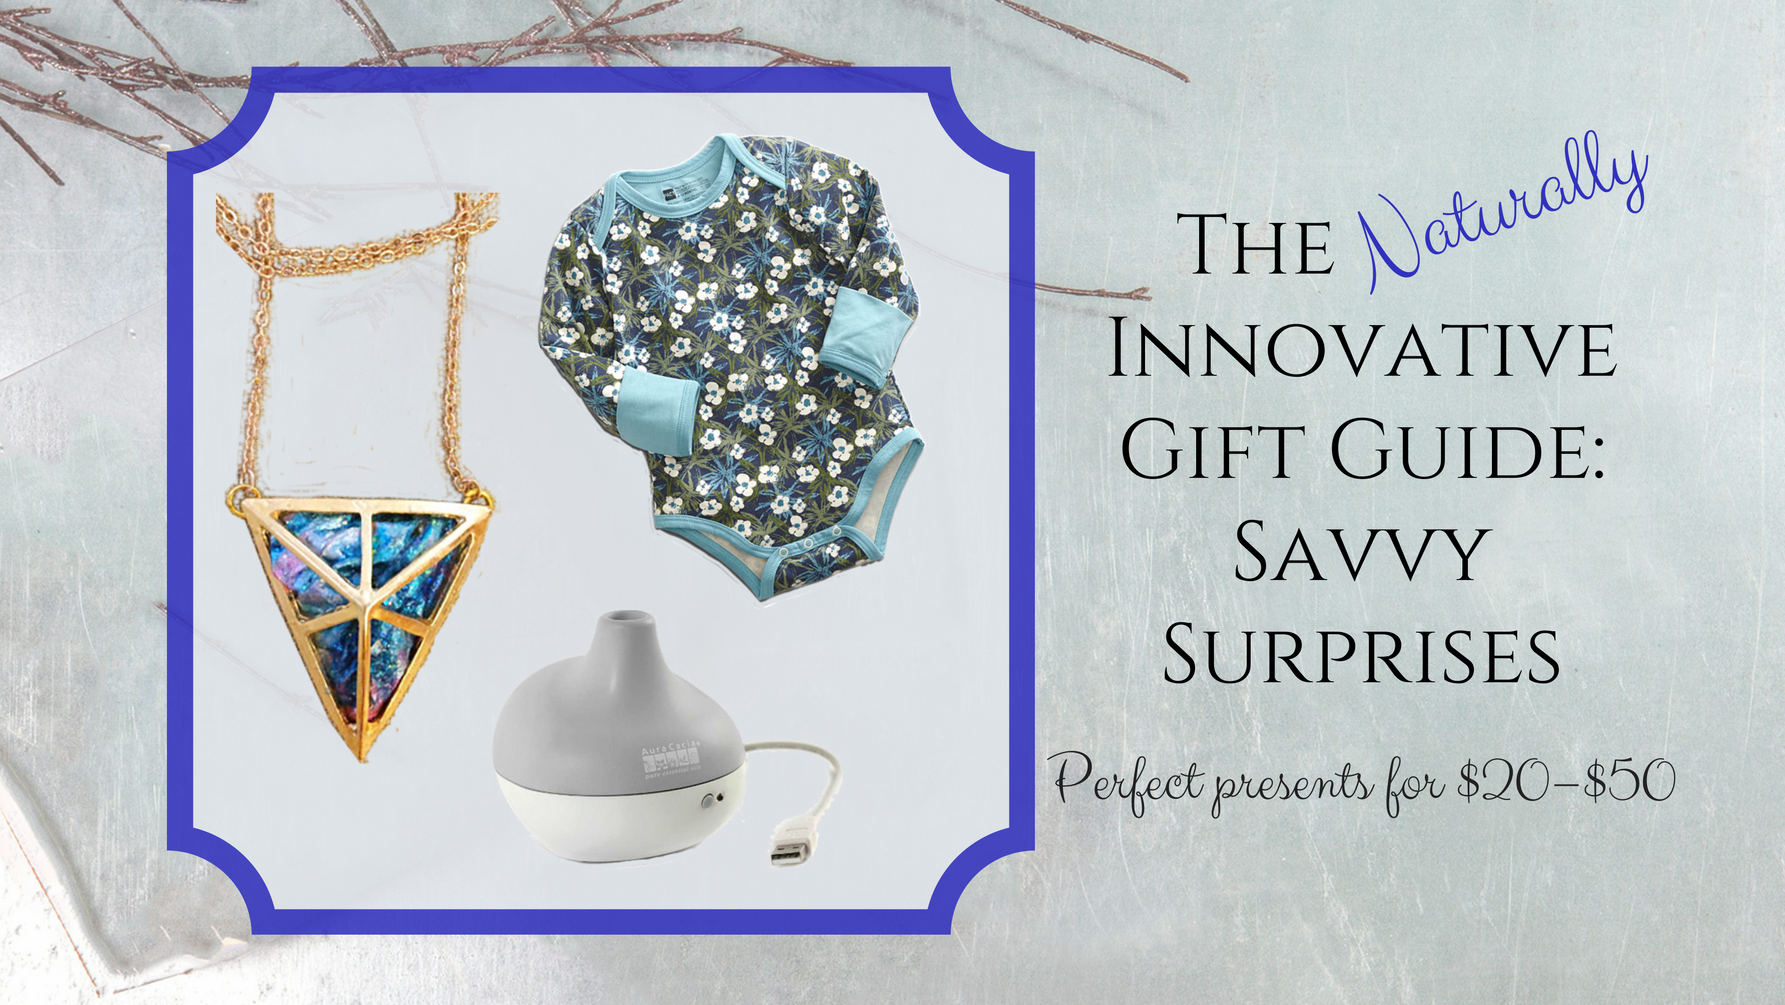 The Naturally Innovative Gift Guide: Savvy Surprises